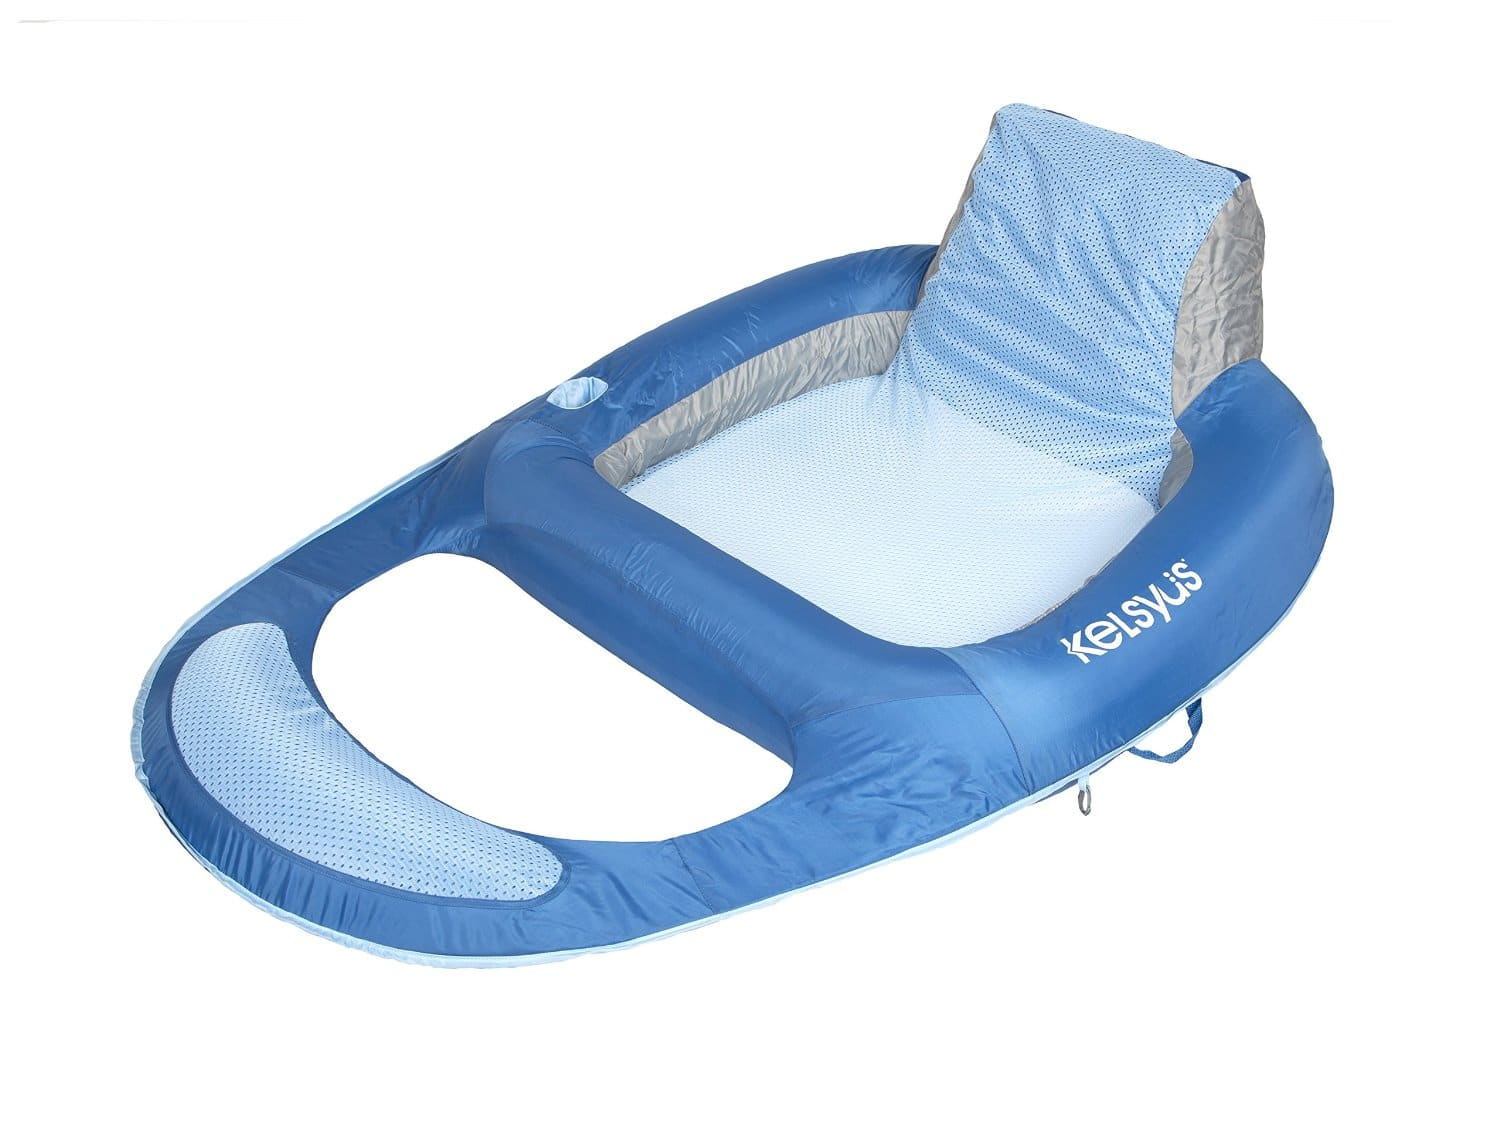 where to buy pool floats